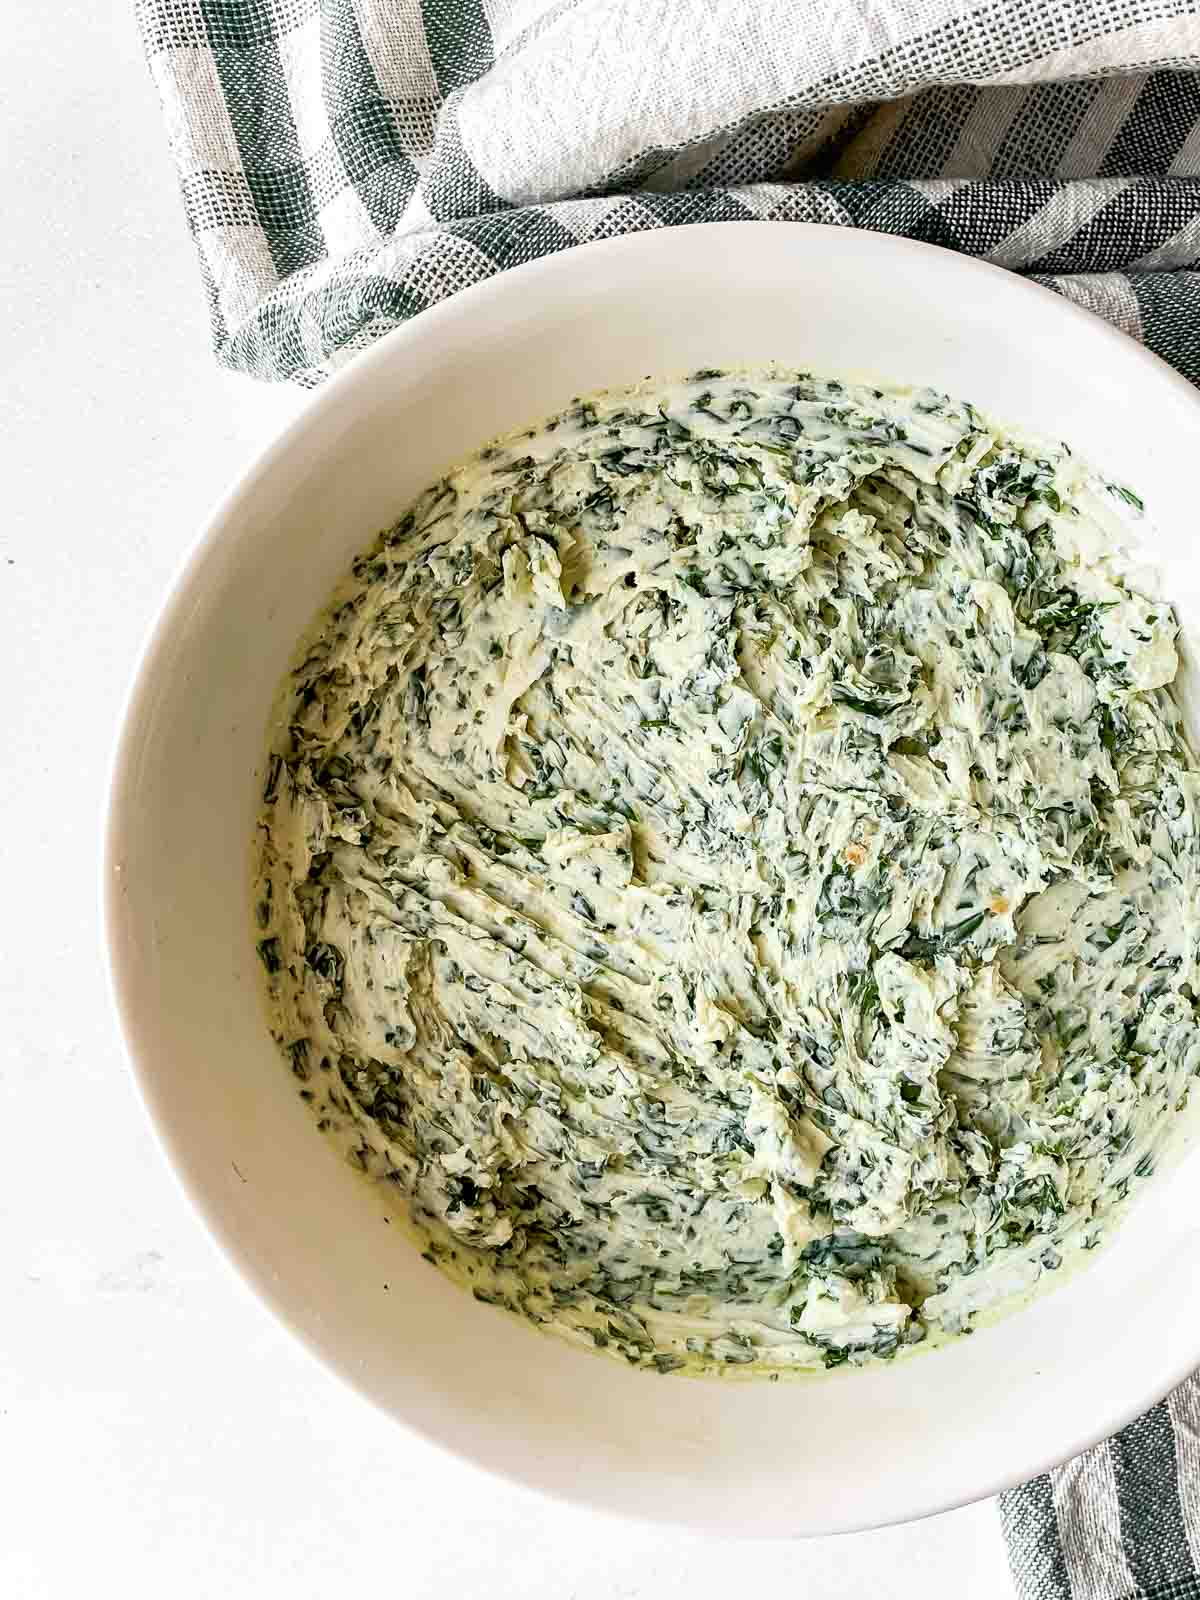 Herbs and cream cheese mixed in a white bowl